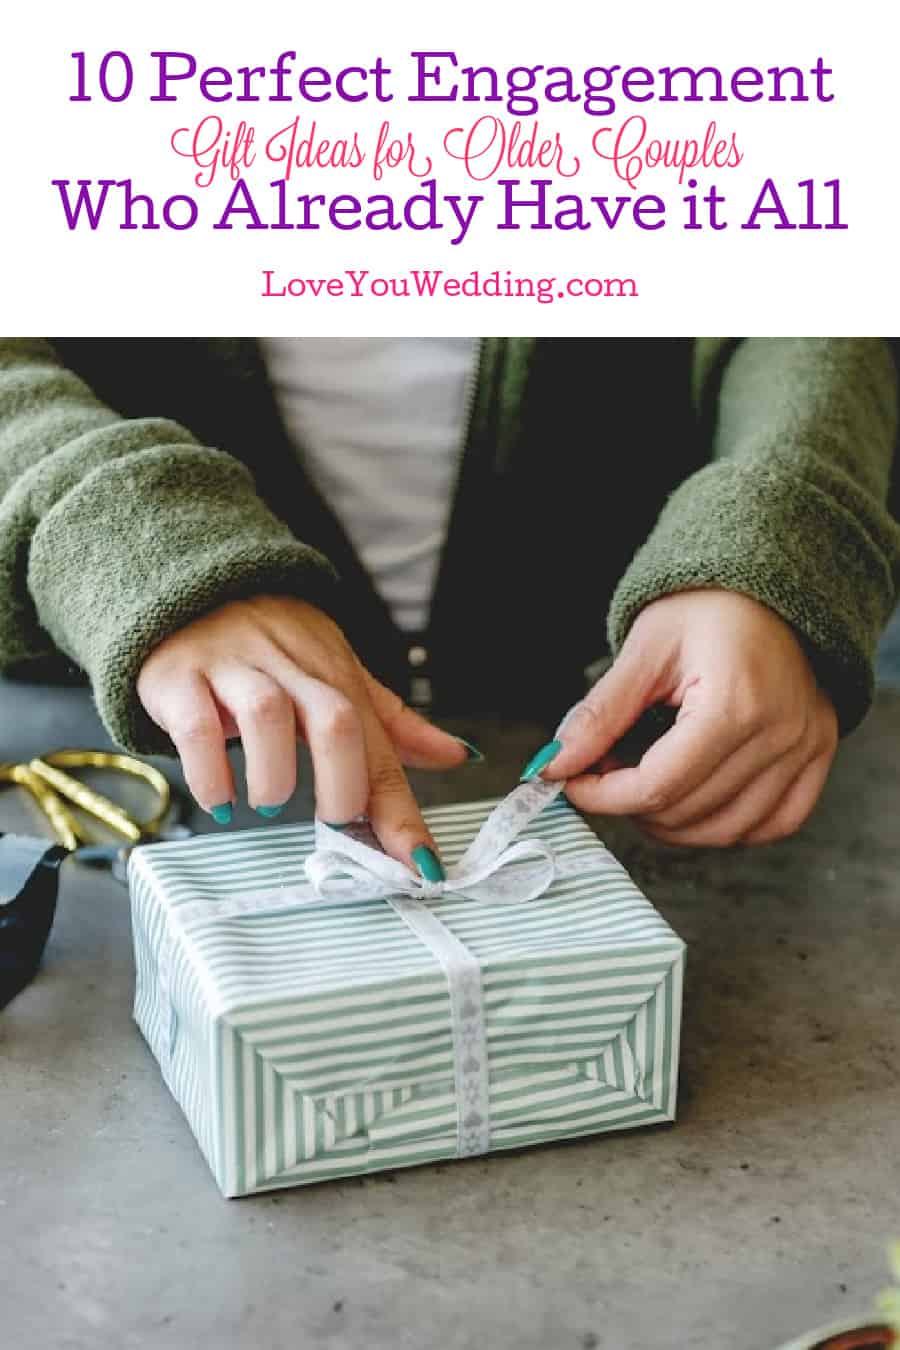 It can be tough to pick out the best engagement gifts for an older couple, especially since they have it all. Try these 10 perfect ideas!